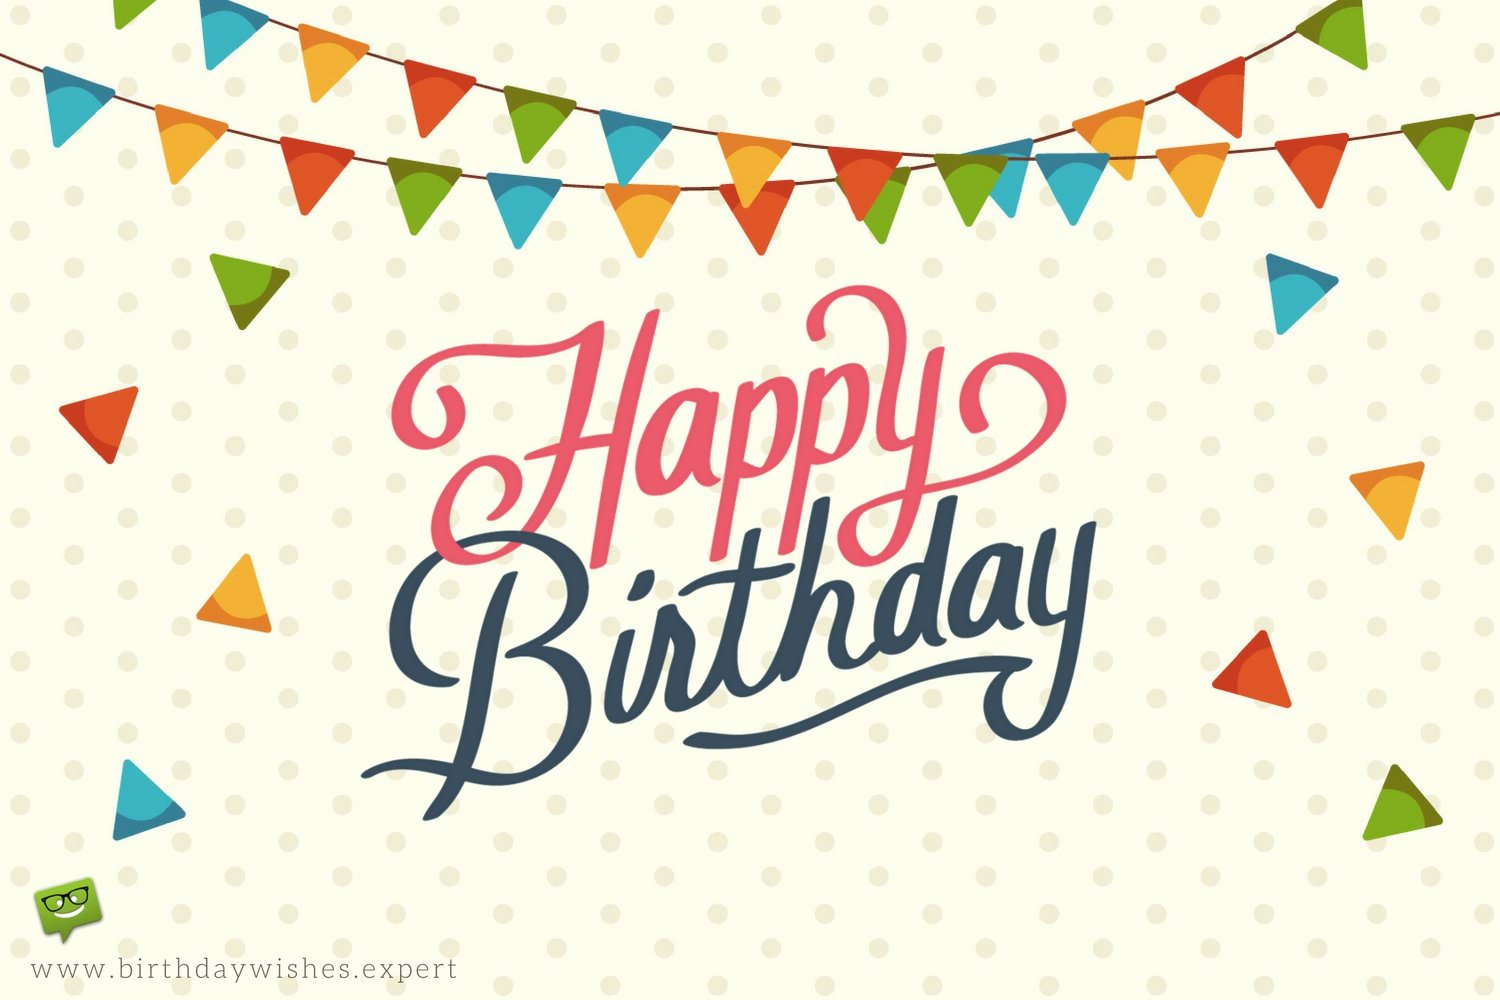 birthday wish pictures for facebook ; Happy-Birthday-wish-on-image-with-garlands-and-confetti-with-dotted-background